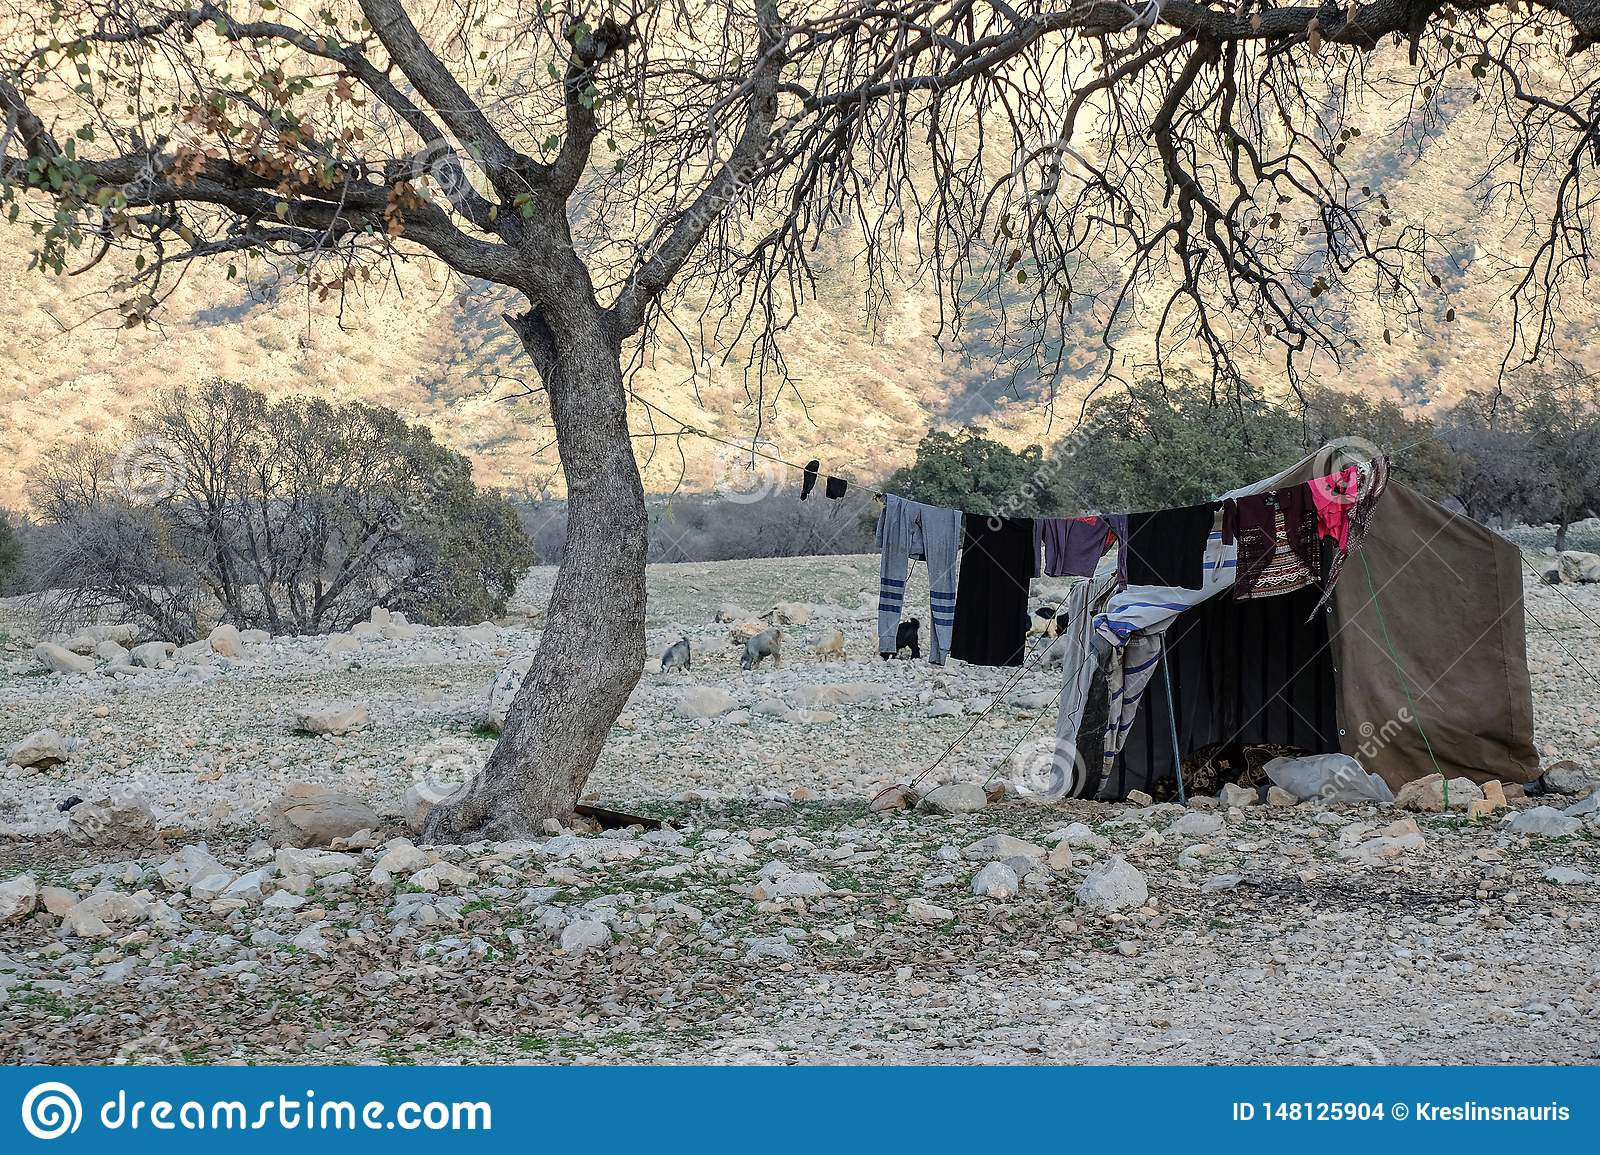 Nomads tent in Zagros mountains Iran